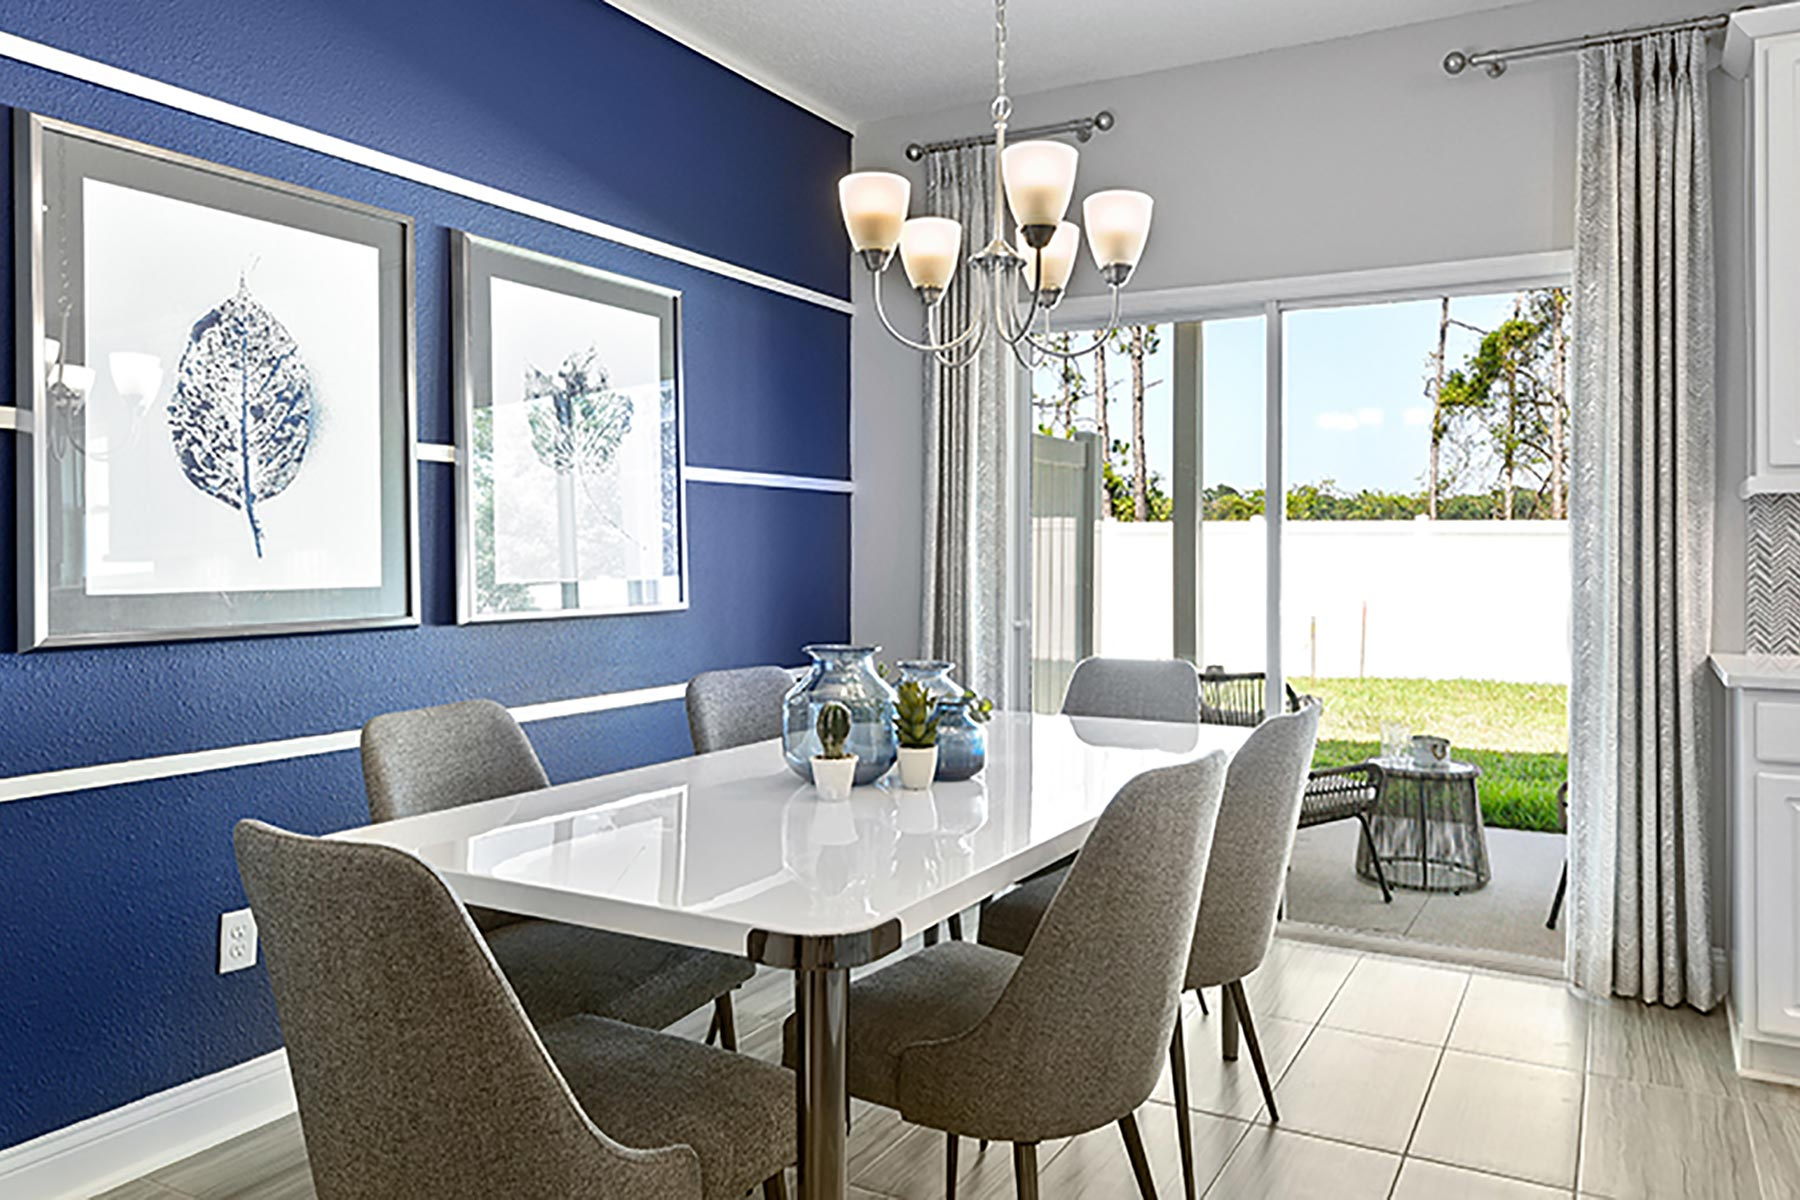 Retreat Plan Dining at Wells Creek in Jacksonville Florida by Mattamy Homes